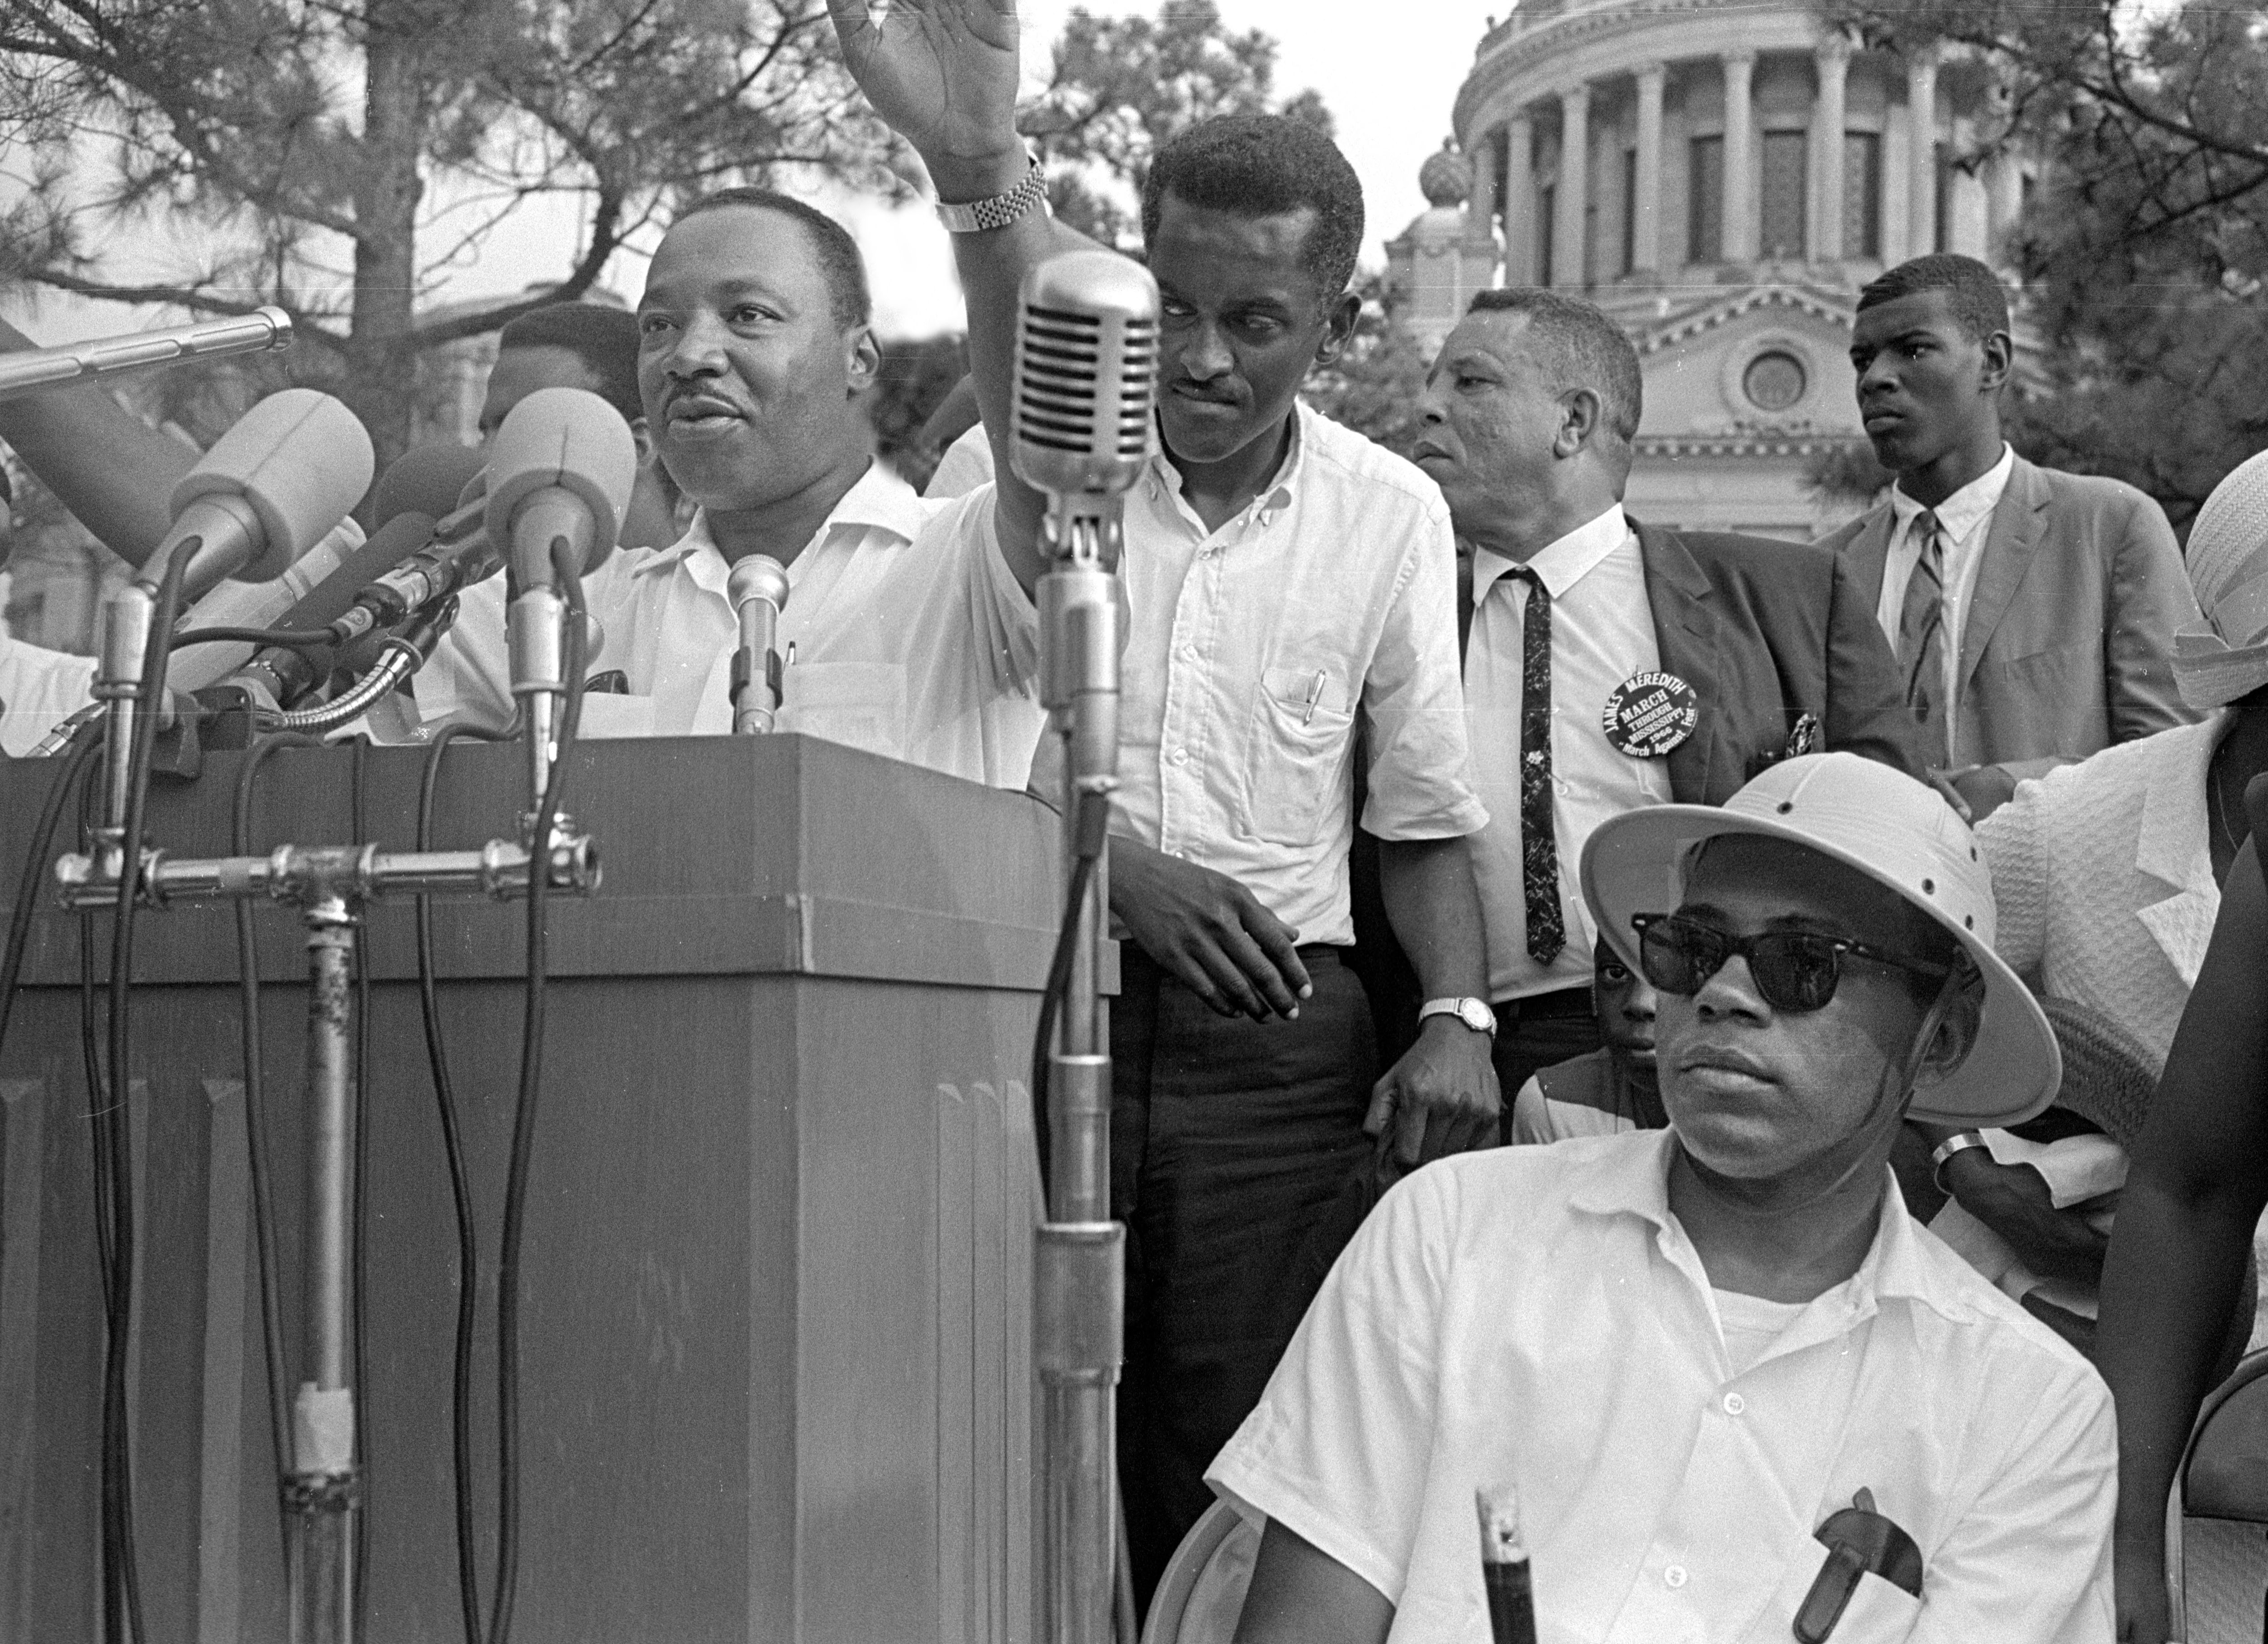 The June 26, 1966, March Against Fear rally at the Mississippi state capitol, with Martin Luther King Jr. speaking and James Meredith sitting before the podium (right).